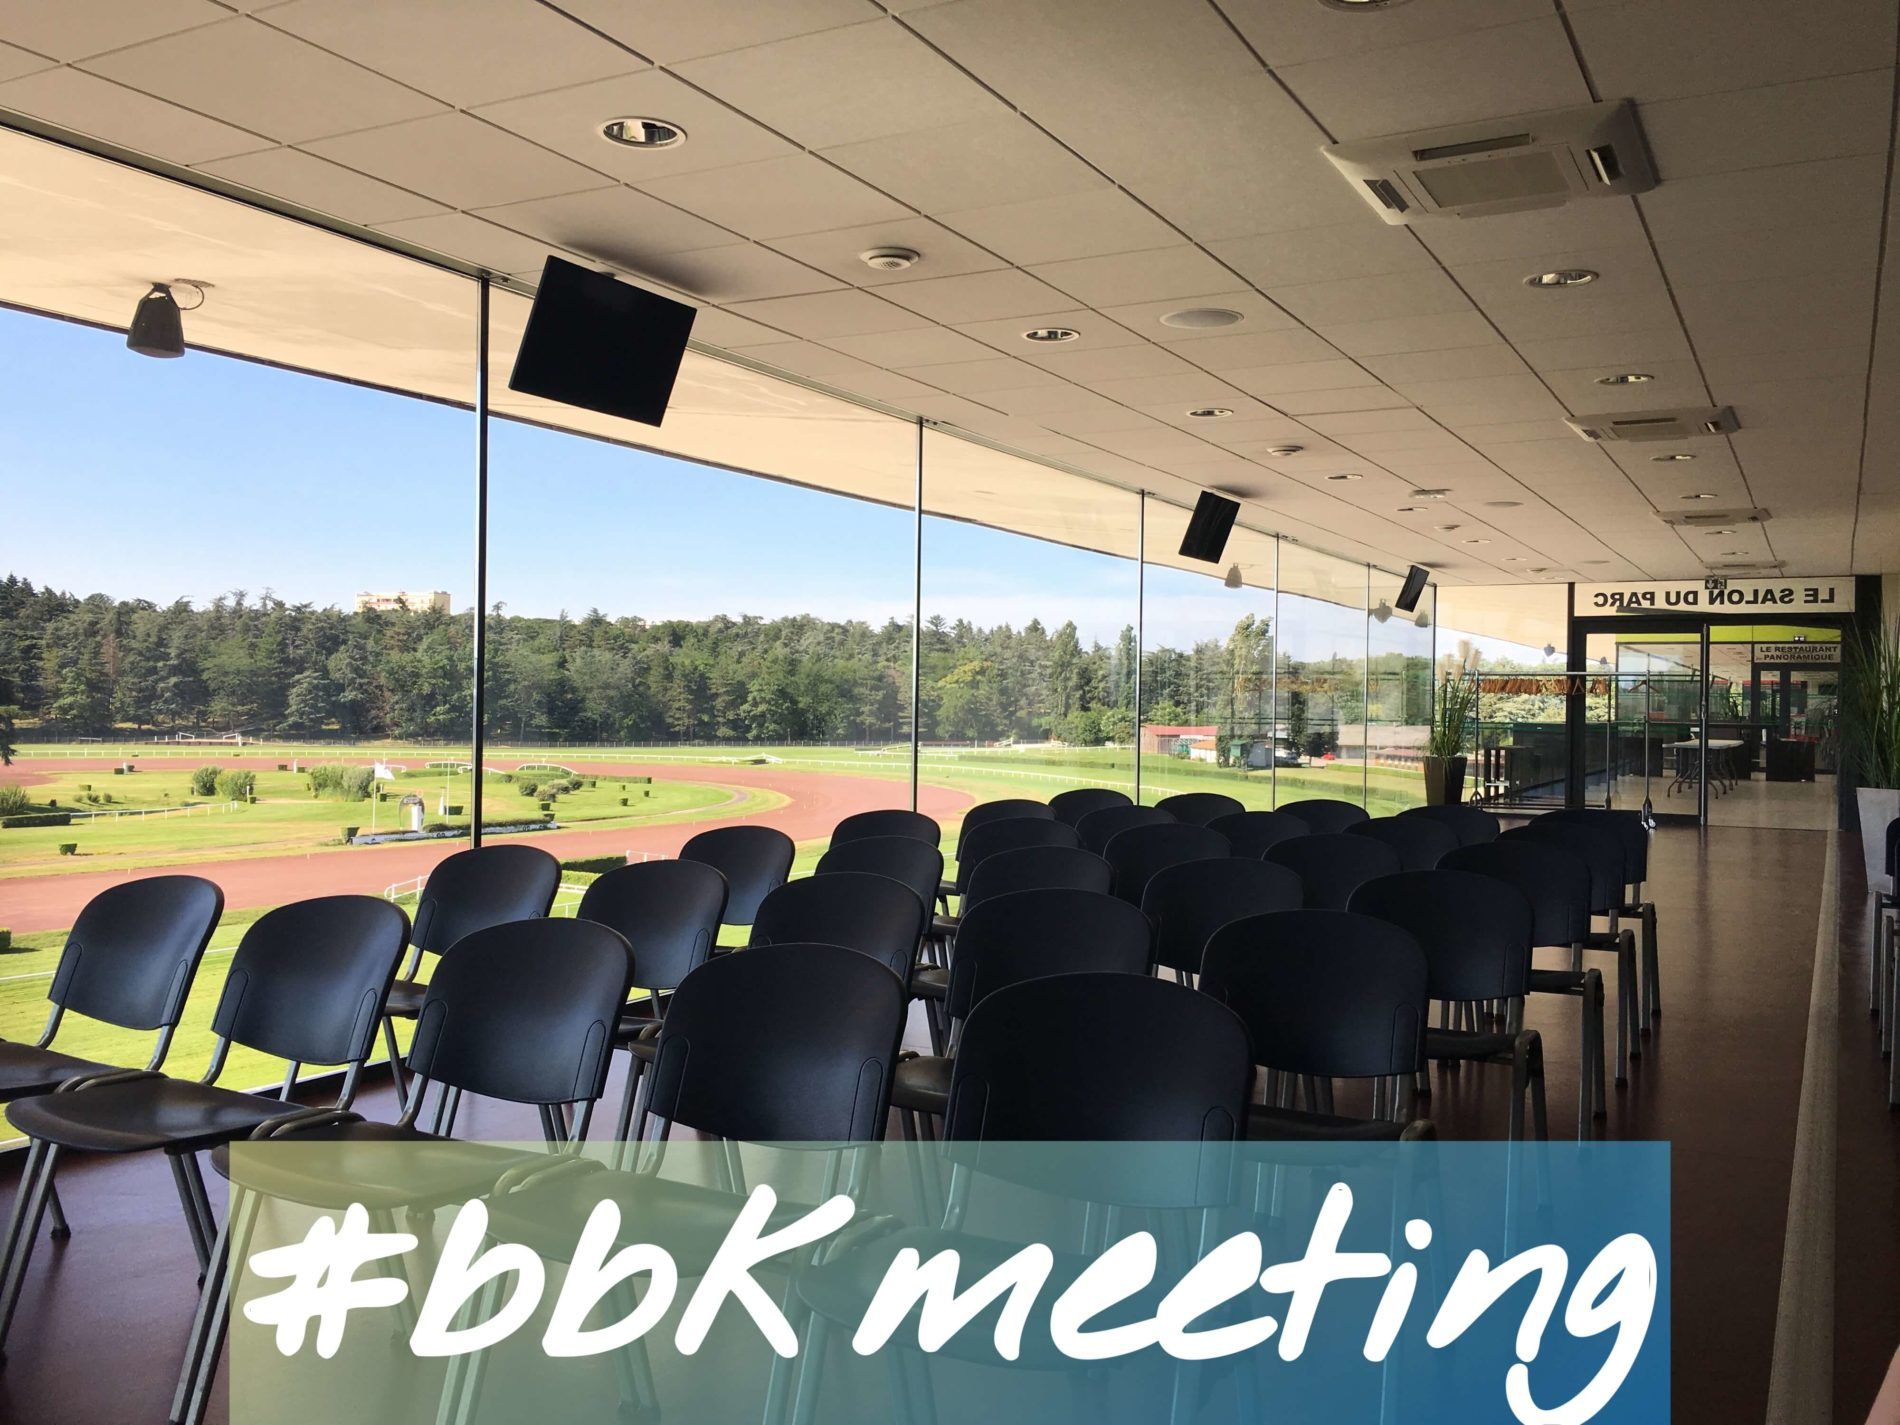 bbk-meeting-bbk-management-event